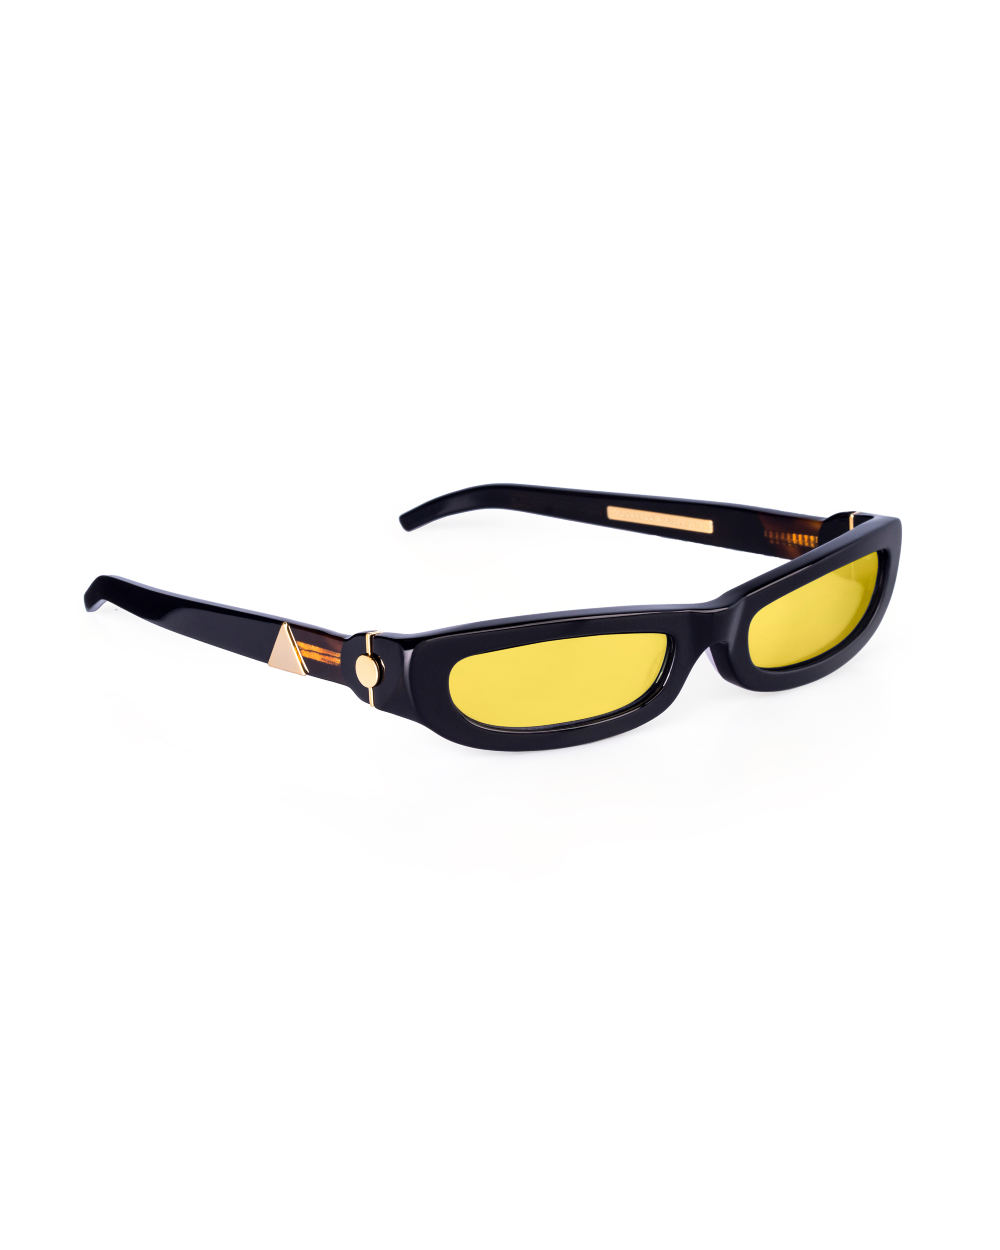 Model SHARP. Sun. Classic Glossy Black & Gold